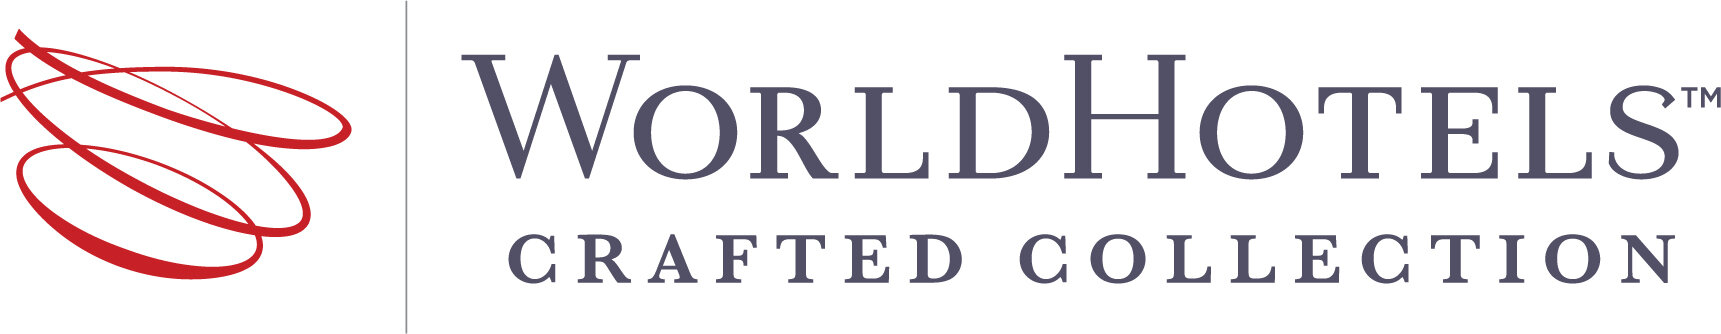 WH Crafted Collection Horizontal logo.jpg